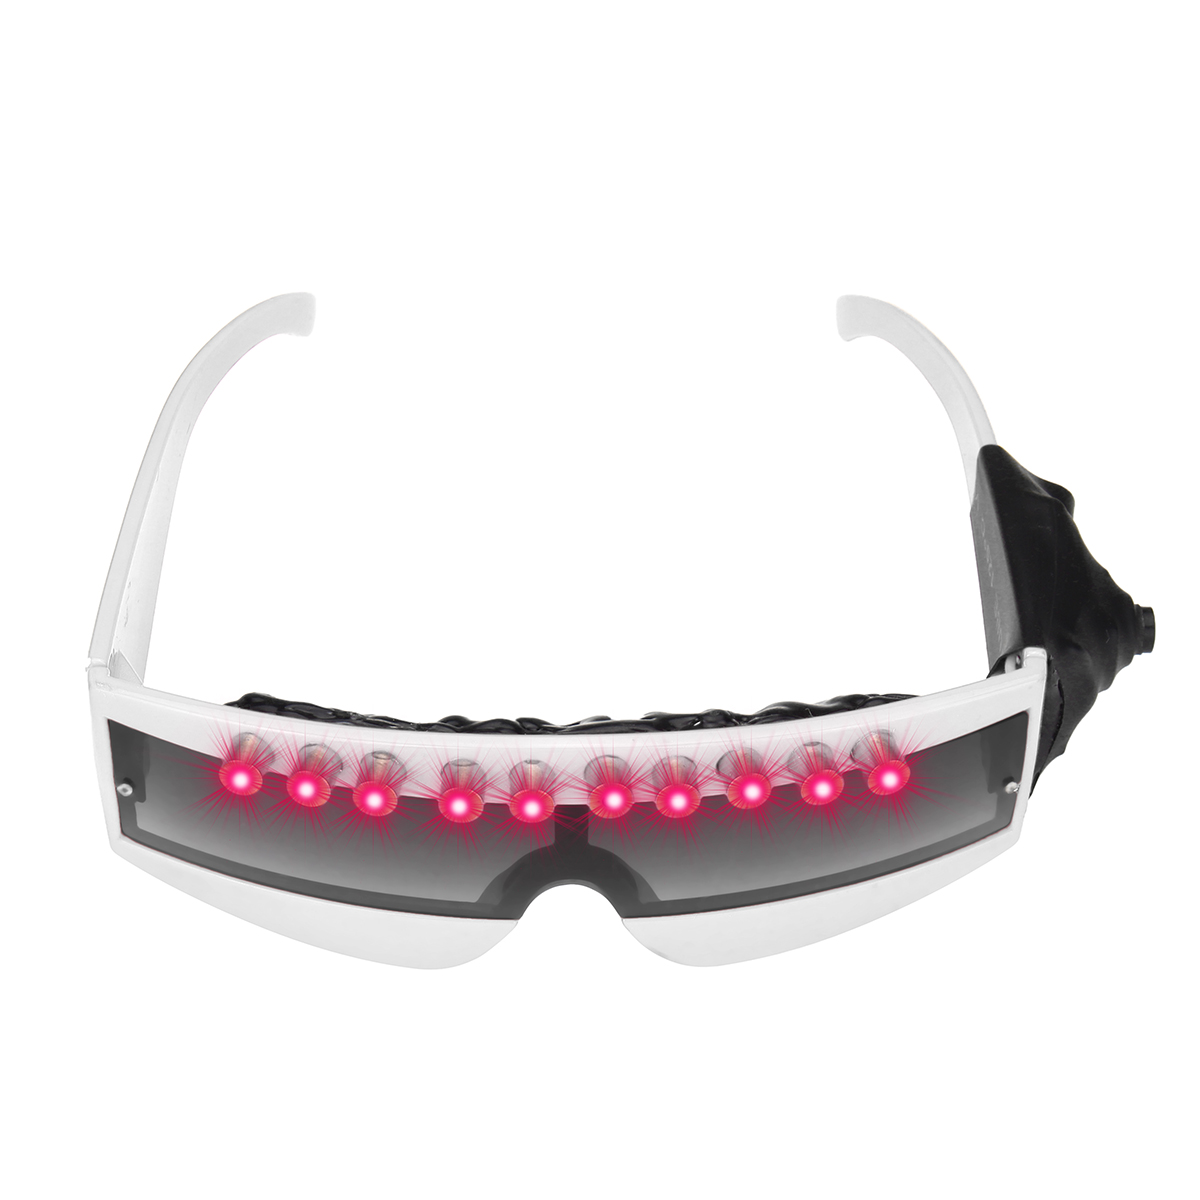 Party Red Light Laser LED DJ Glasses Nightclub Stage Dance Eyeglass Wedding Decoration Favor Halloween Glow Party Supplies